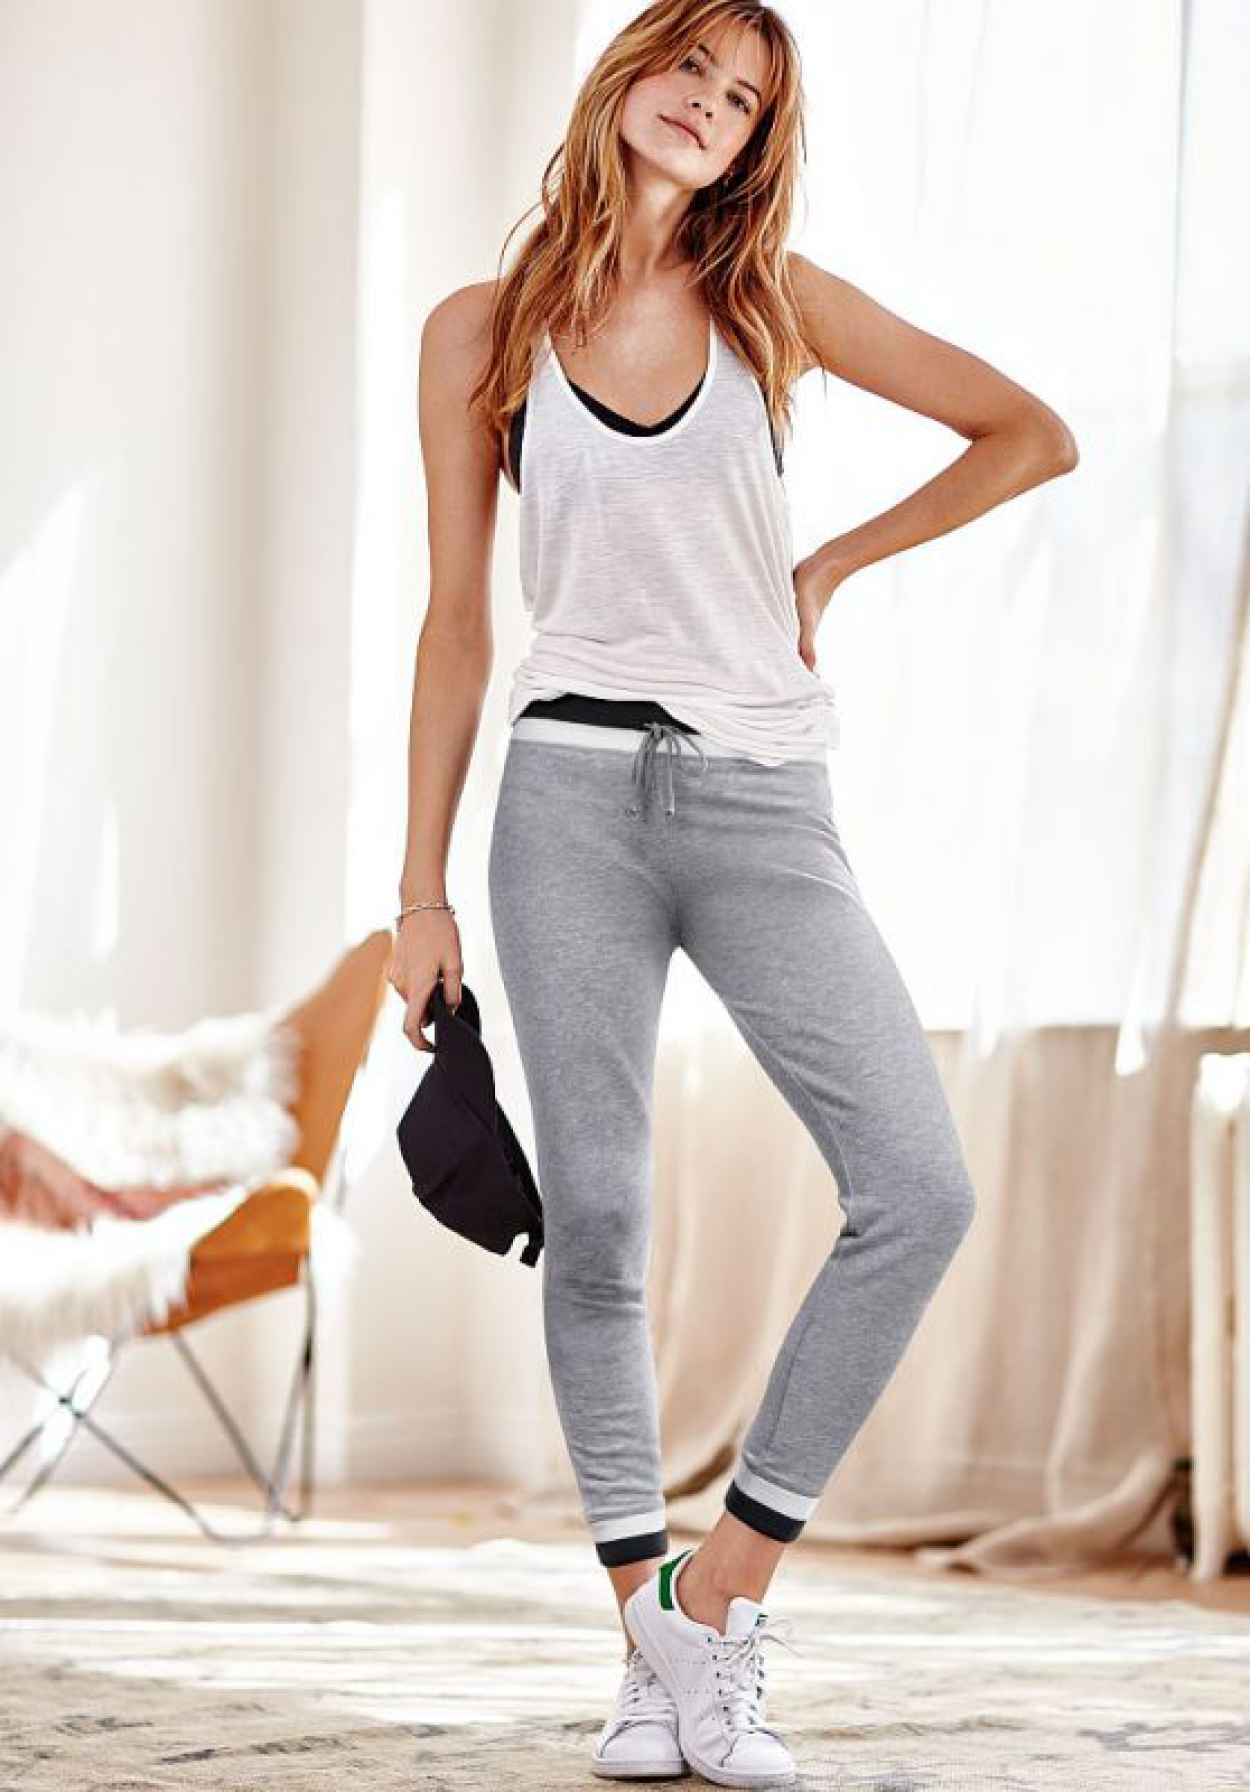 Behati Prinsloo Photos - Victorias Secret June 2015-1